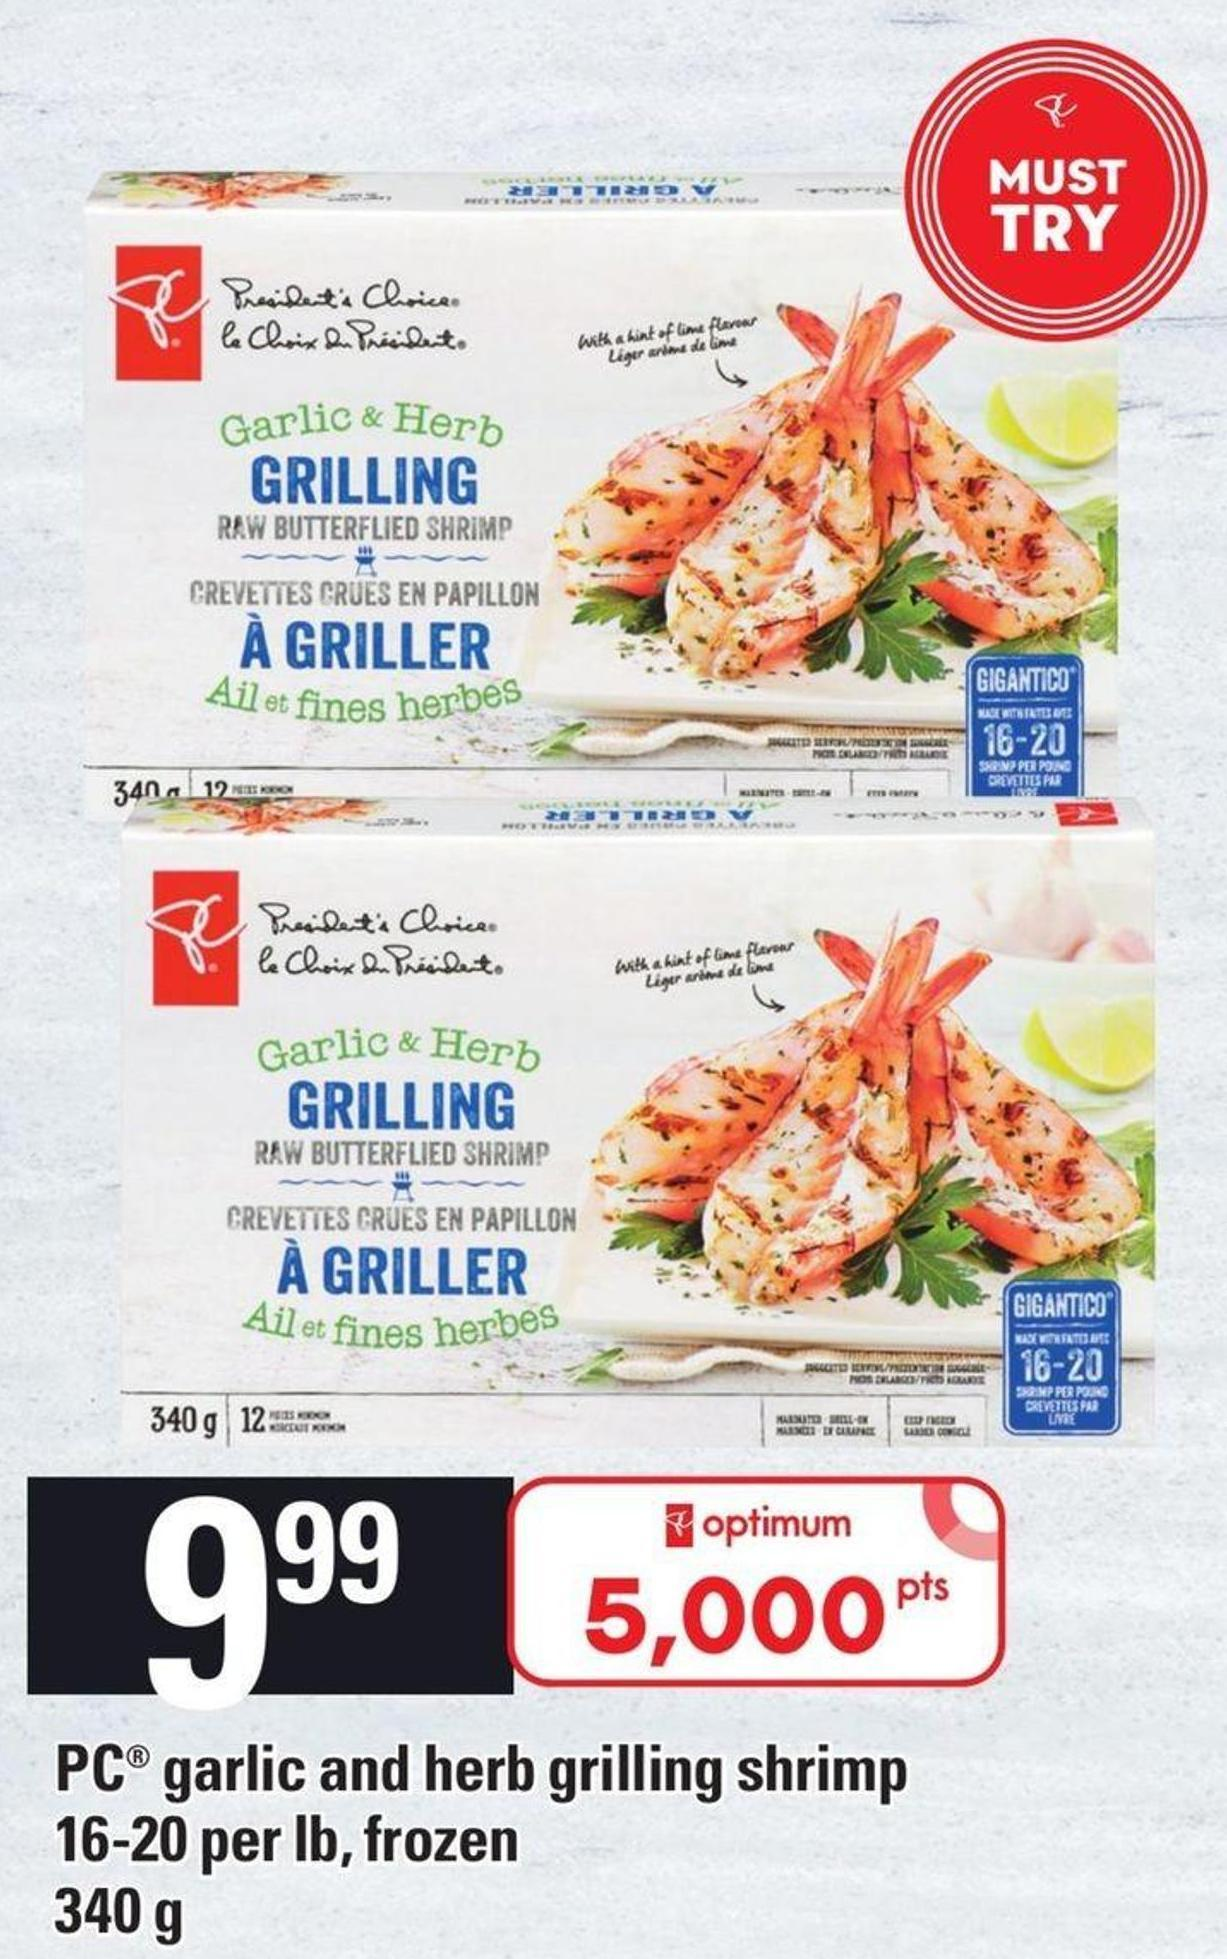 PC Garlic And Herb Grilling Shrimp 16-20 Per Lb - Frozen 340 g